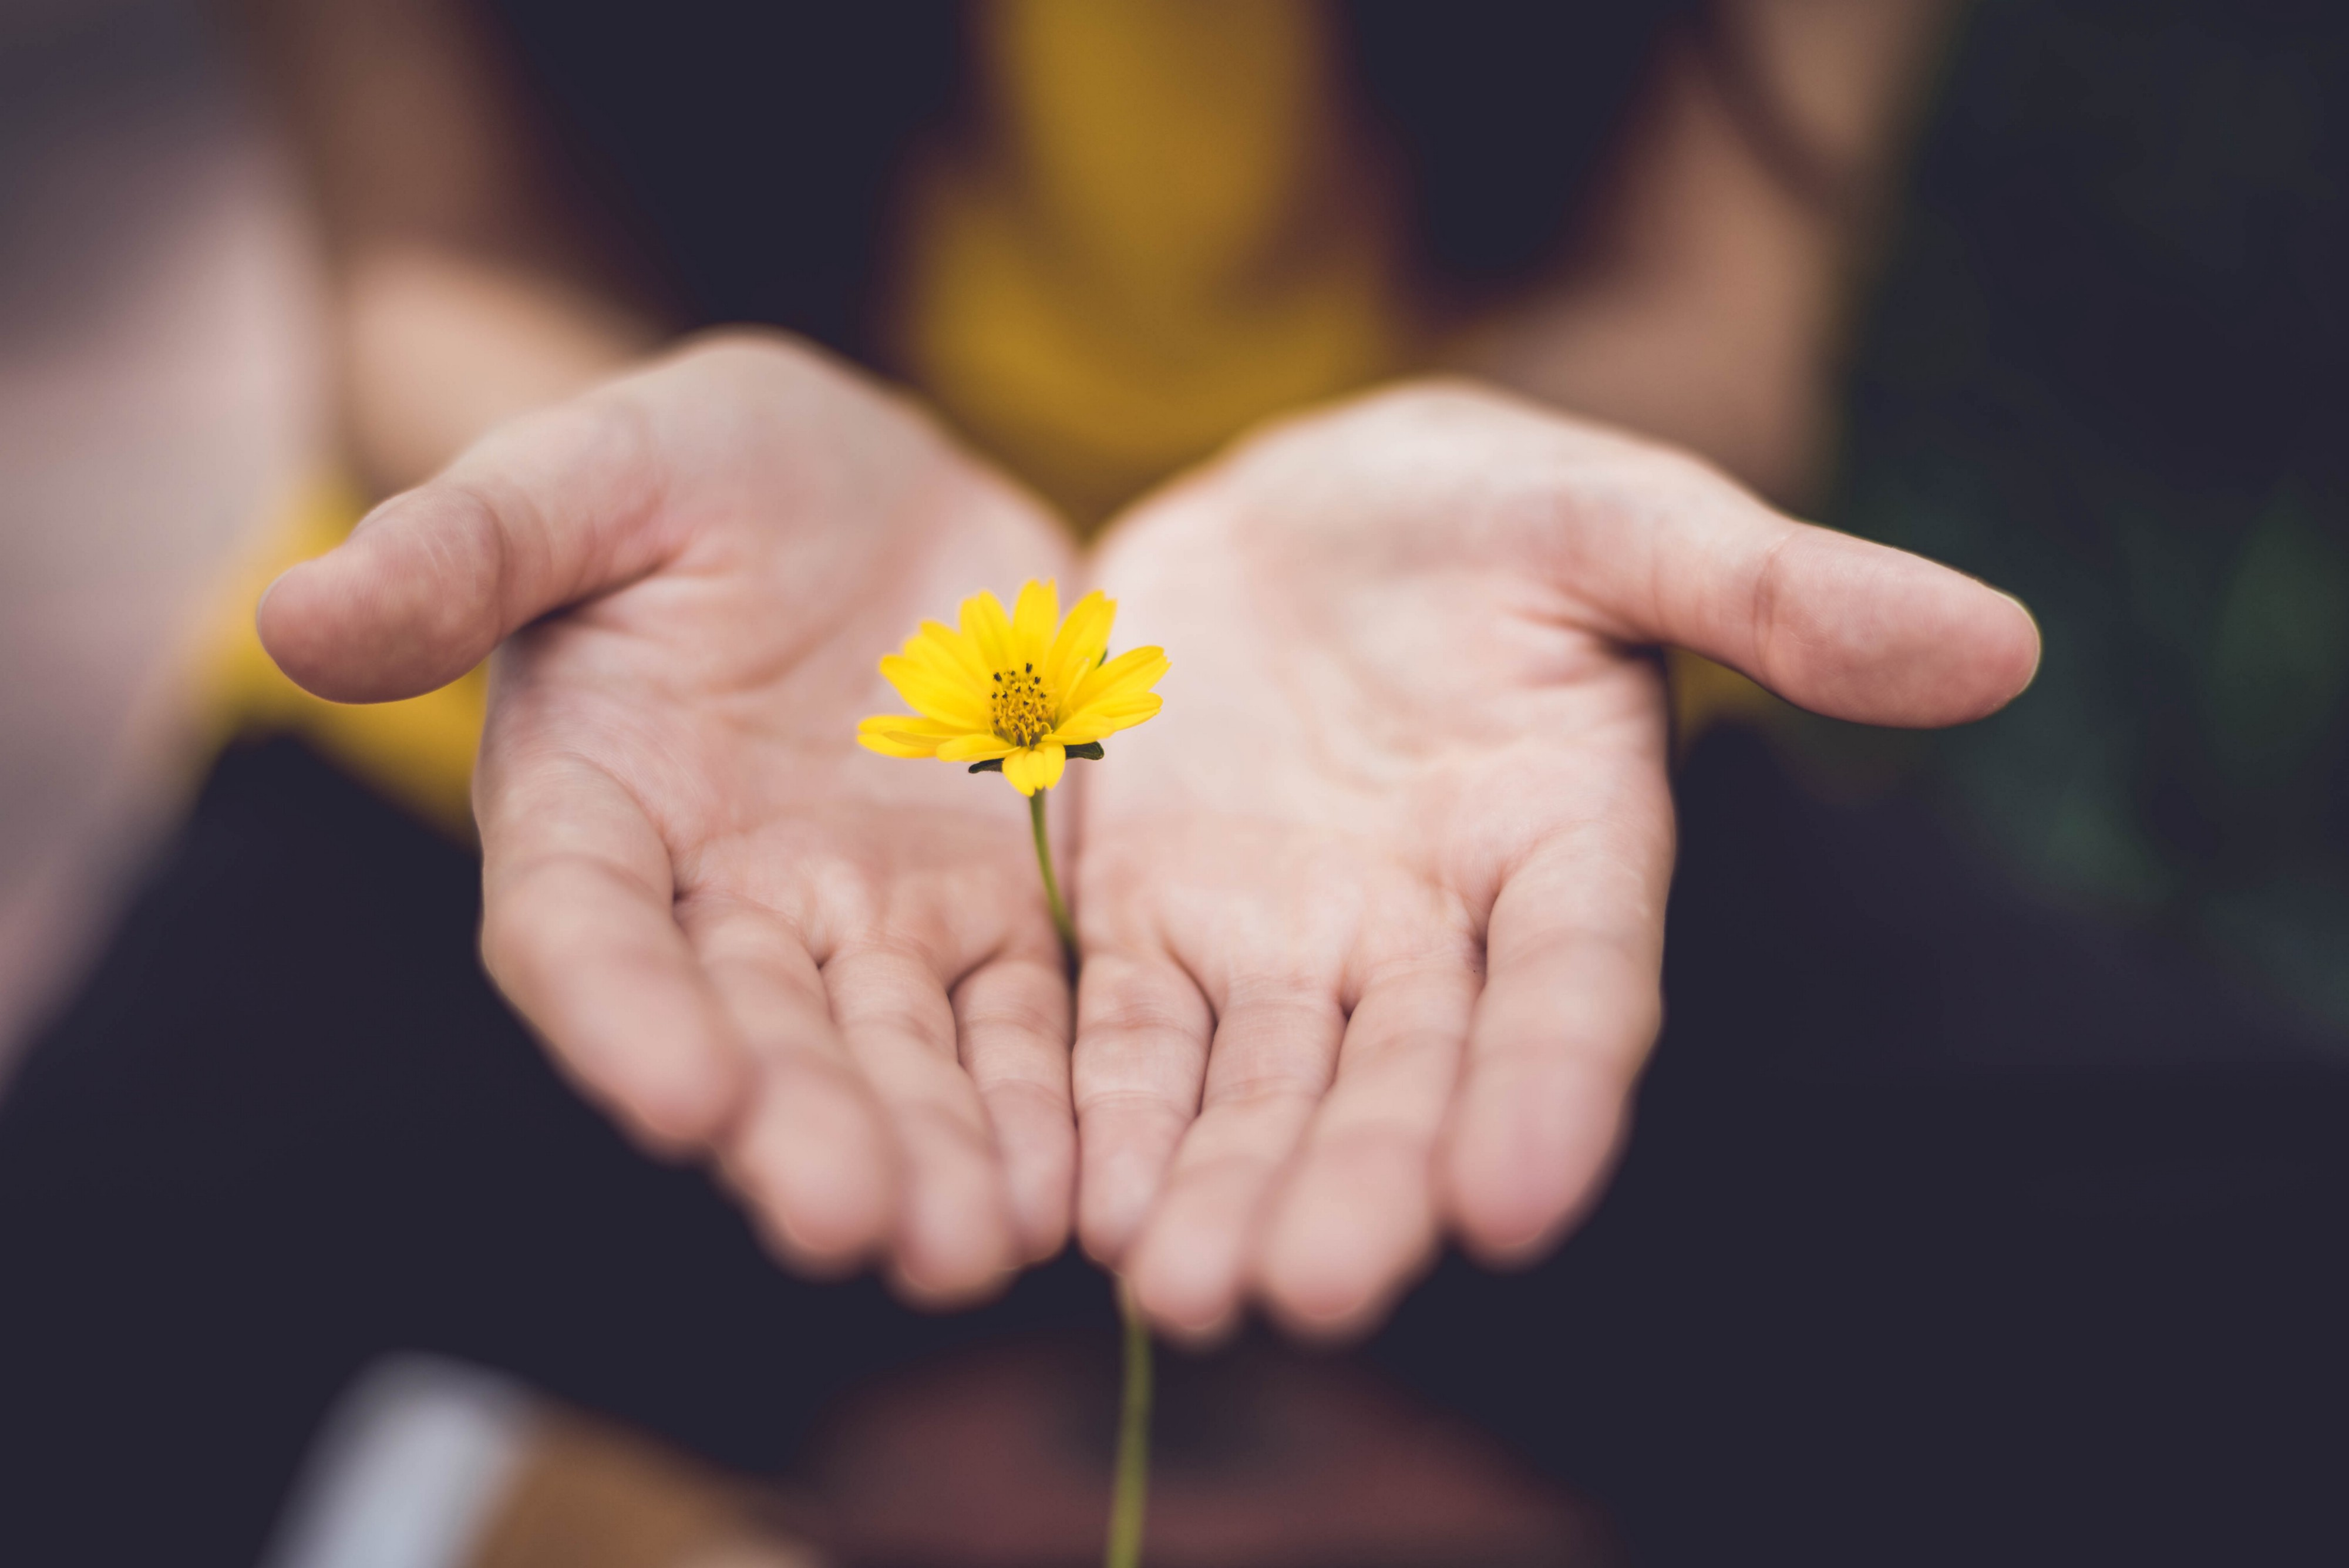 5 Steps To Forgive Resentment